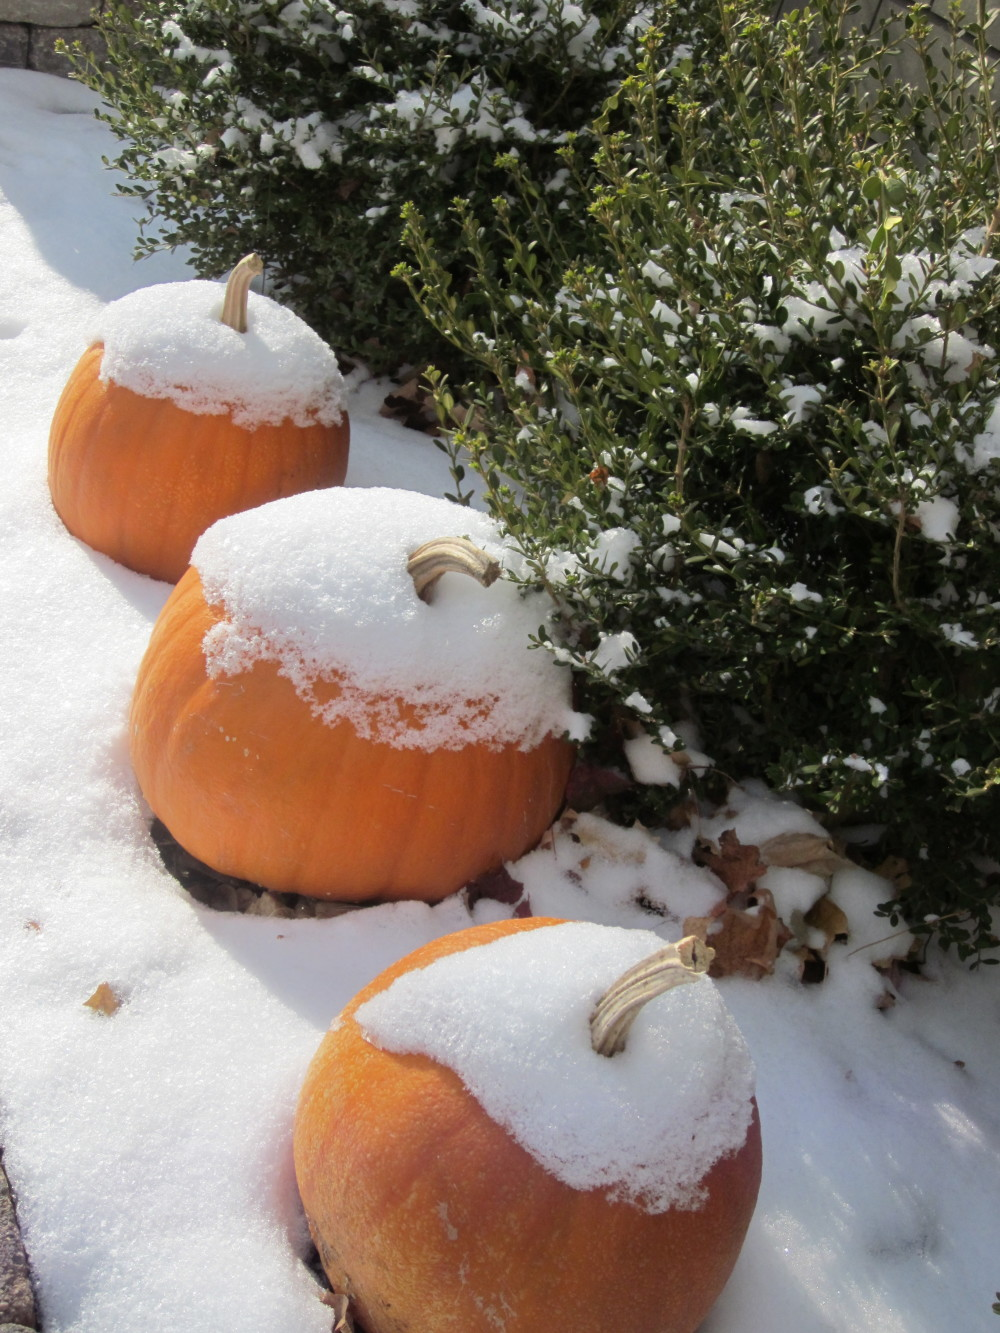 Pumpkins with a dusting of snow!